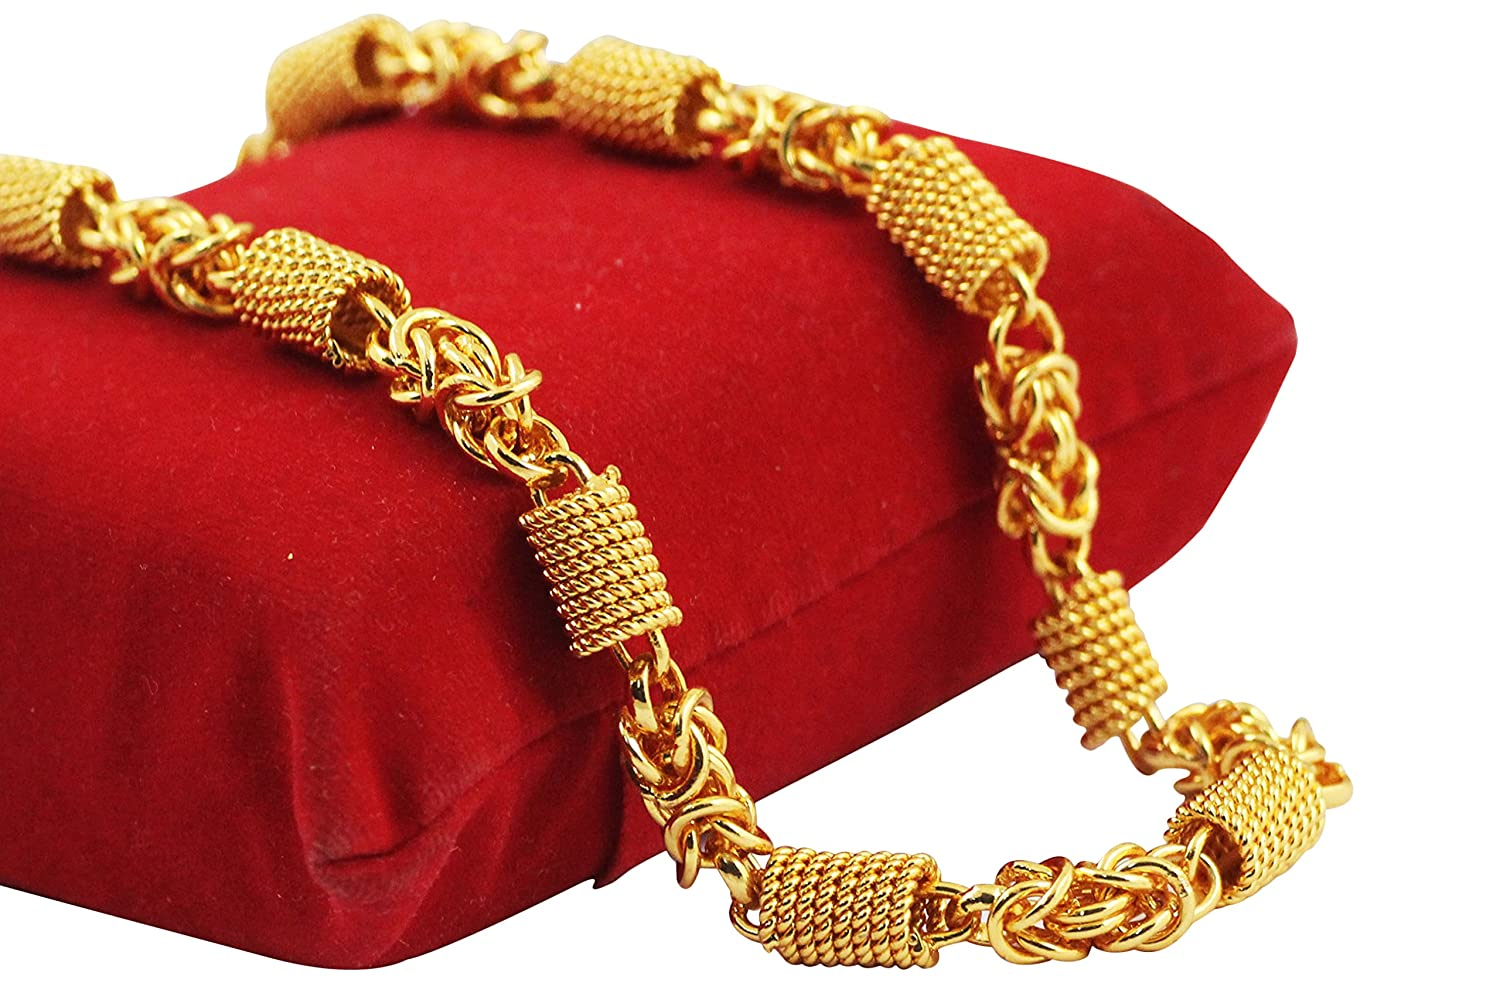 D/&D Crafts Gold Alloy Temple Ethnic Curb Chain for Girls Women